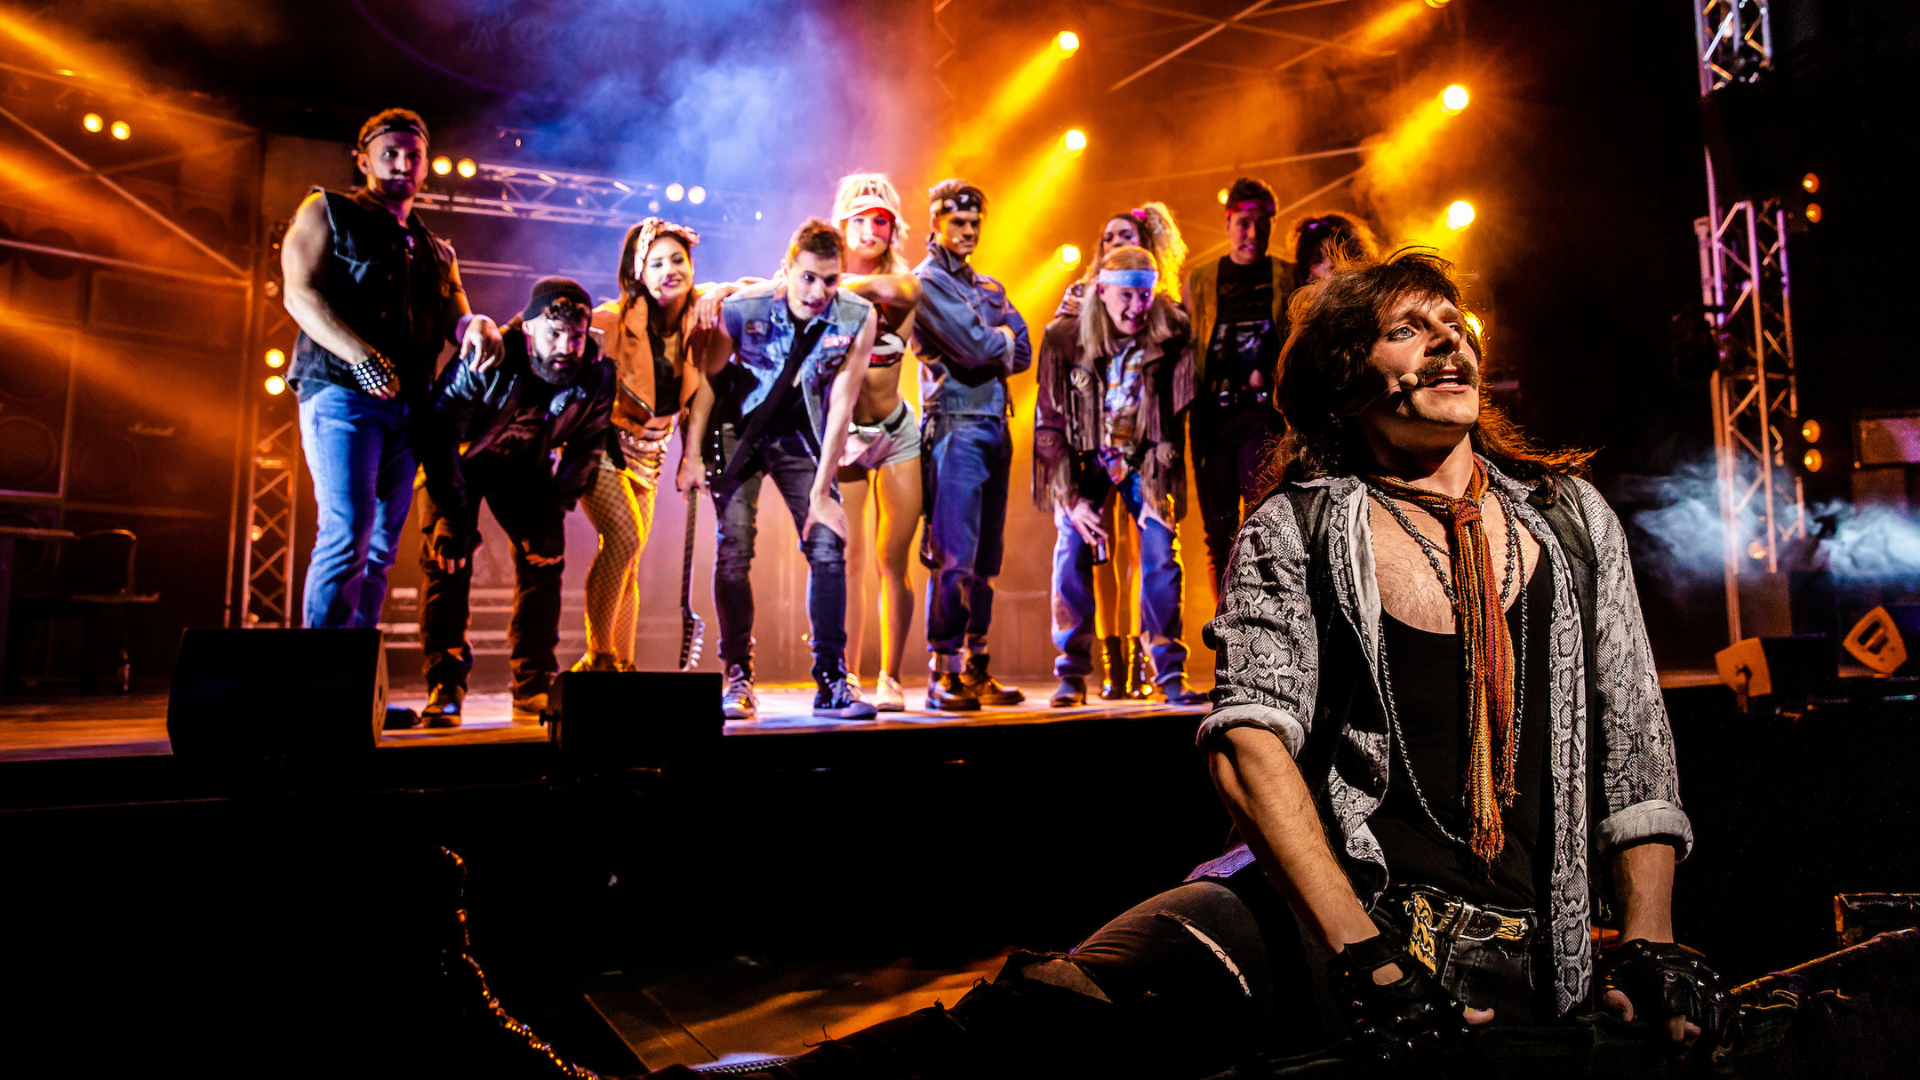 Rock of Ages production shot: a male actor sits on the edge of the stage, staring off into the audience, while the other cast members stand behind